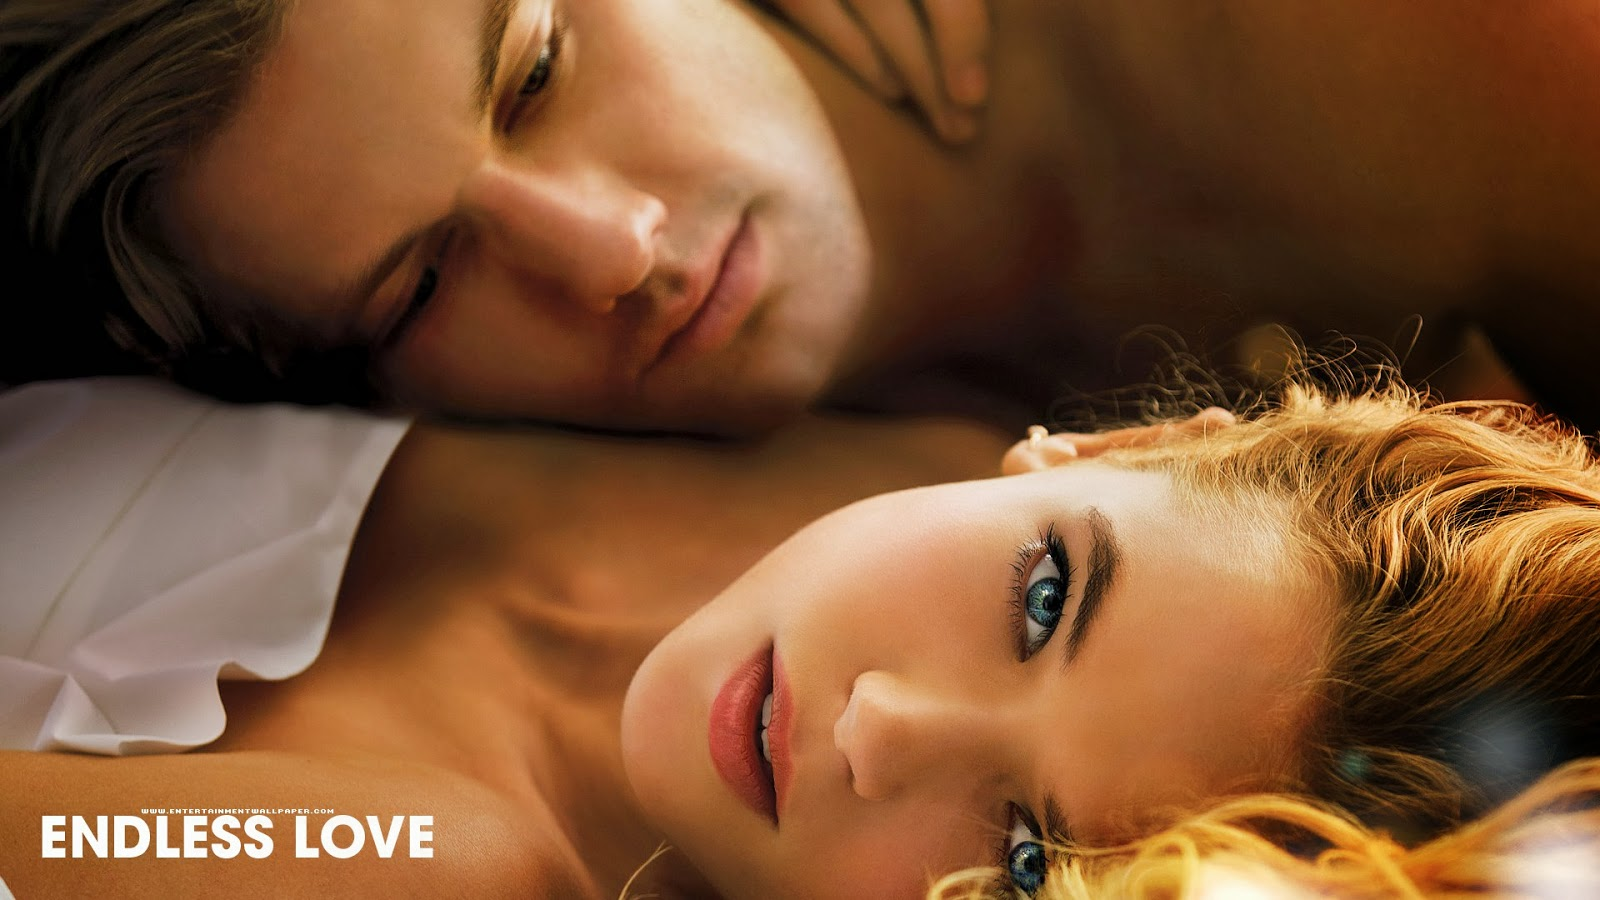 FREE DOWNLOAD MOVIES ONLINE: Endless Love 2014 Movie Free Download